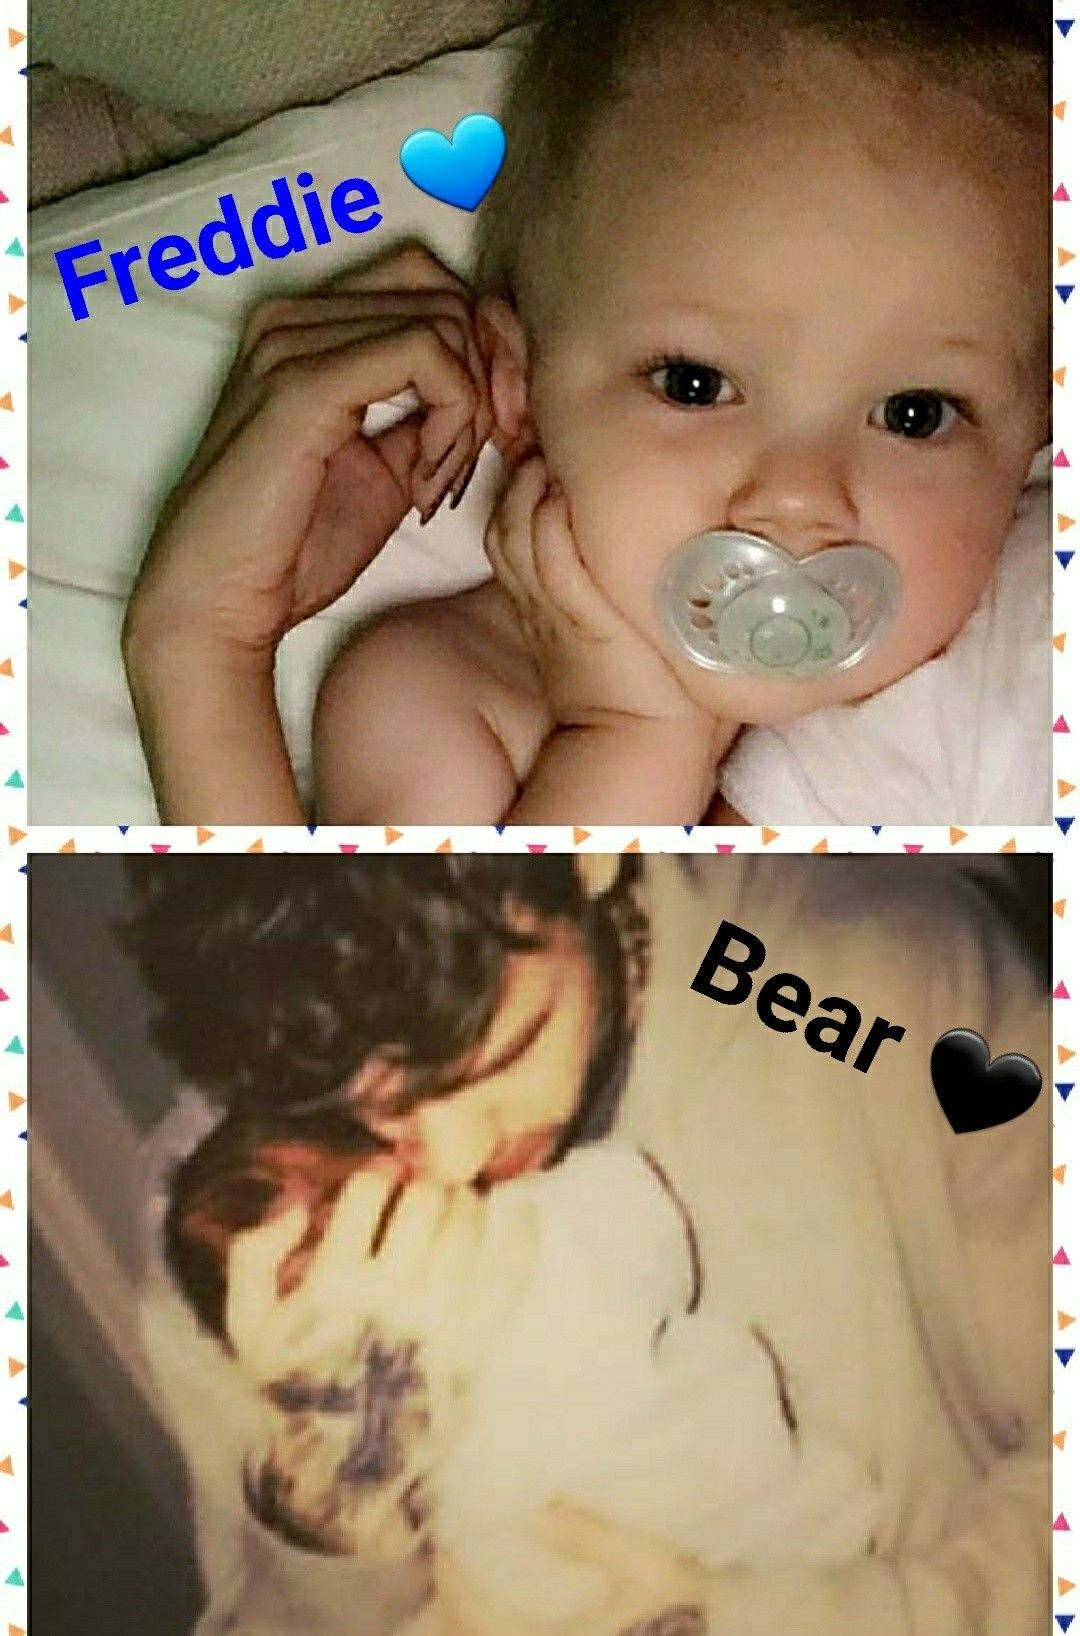 Sweet Boys Freddie Tomlinson And Bear Payne I Believe In Love Irish Boys British Boys Liam payne reveals baby son bear has just started to walk. sweet boys freddie tomlinson and bear